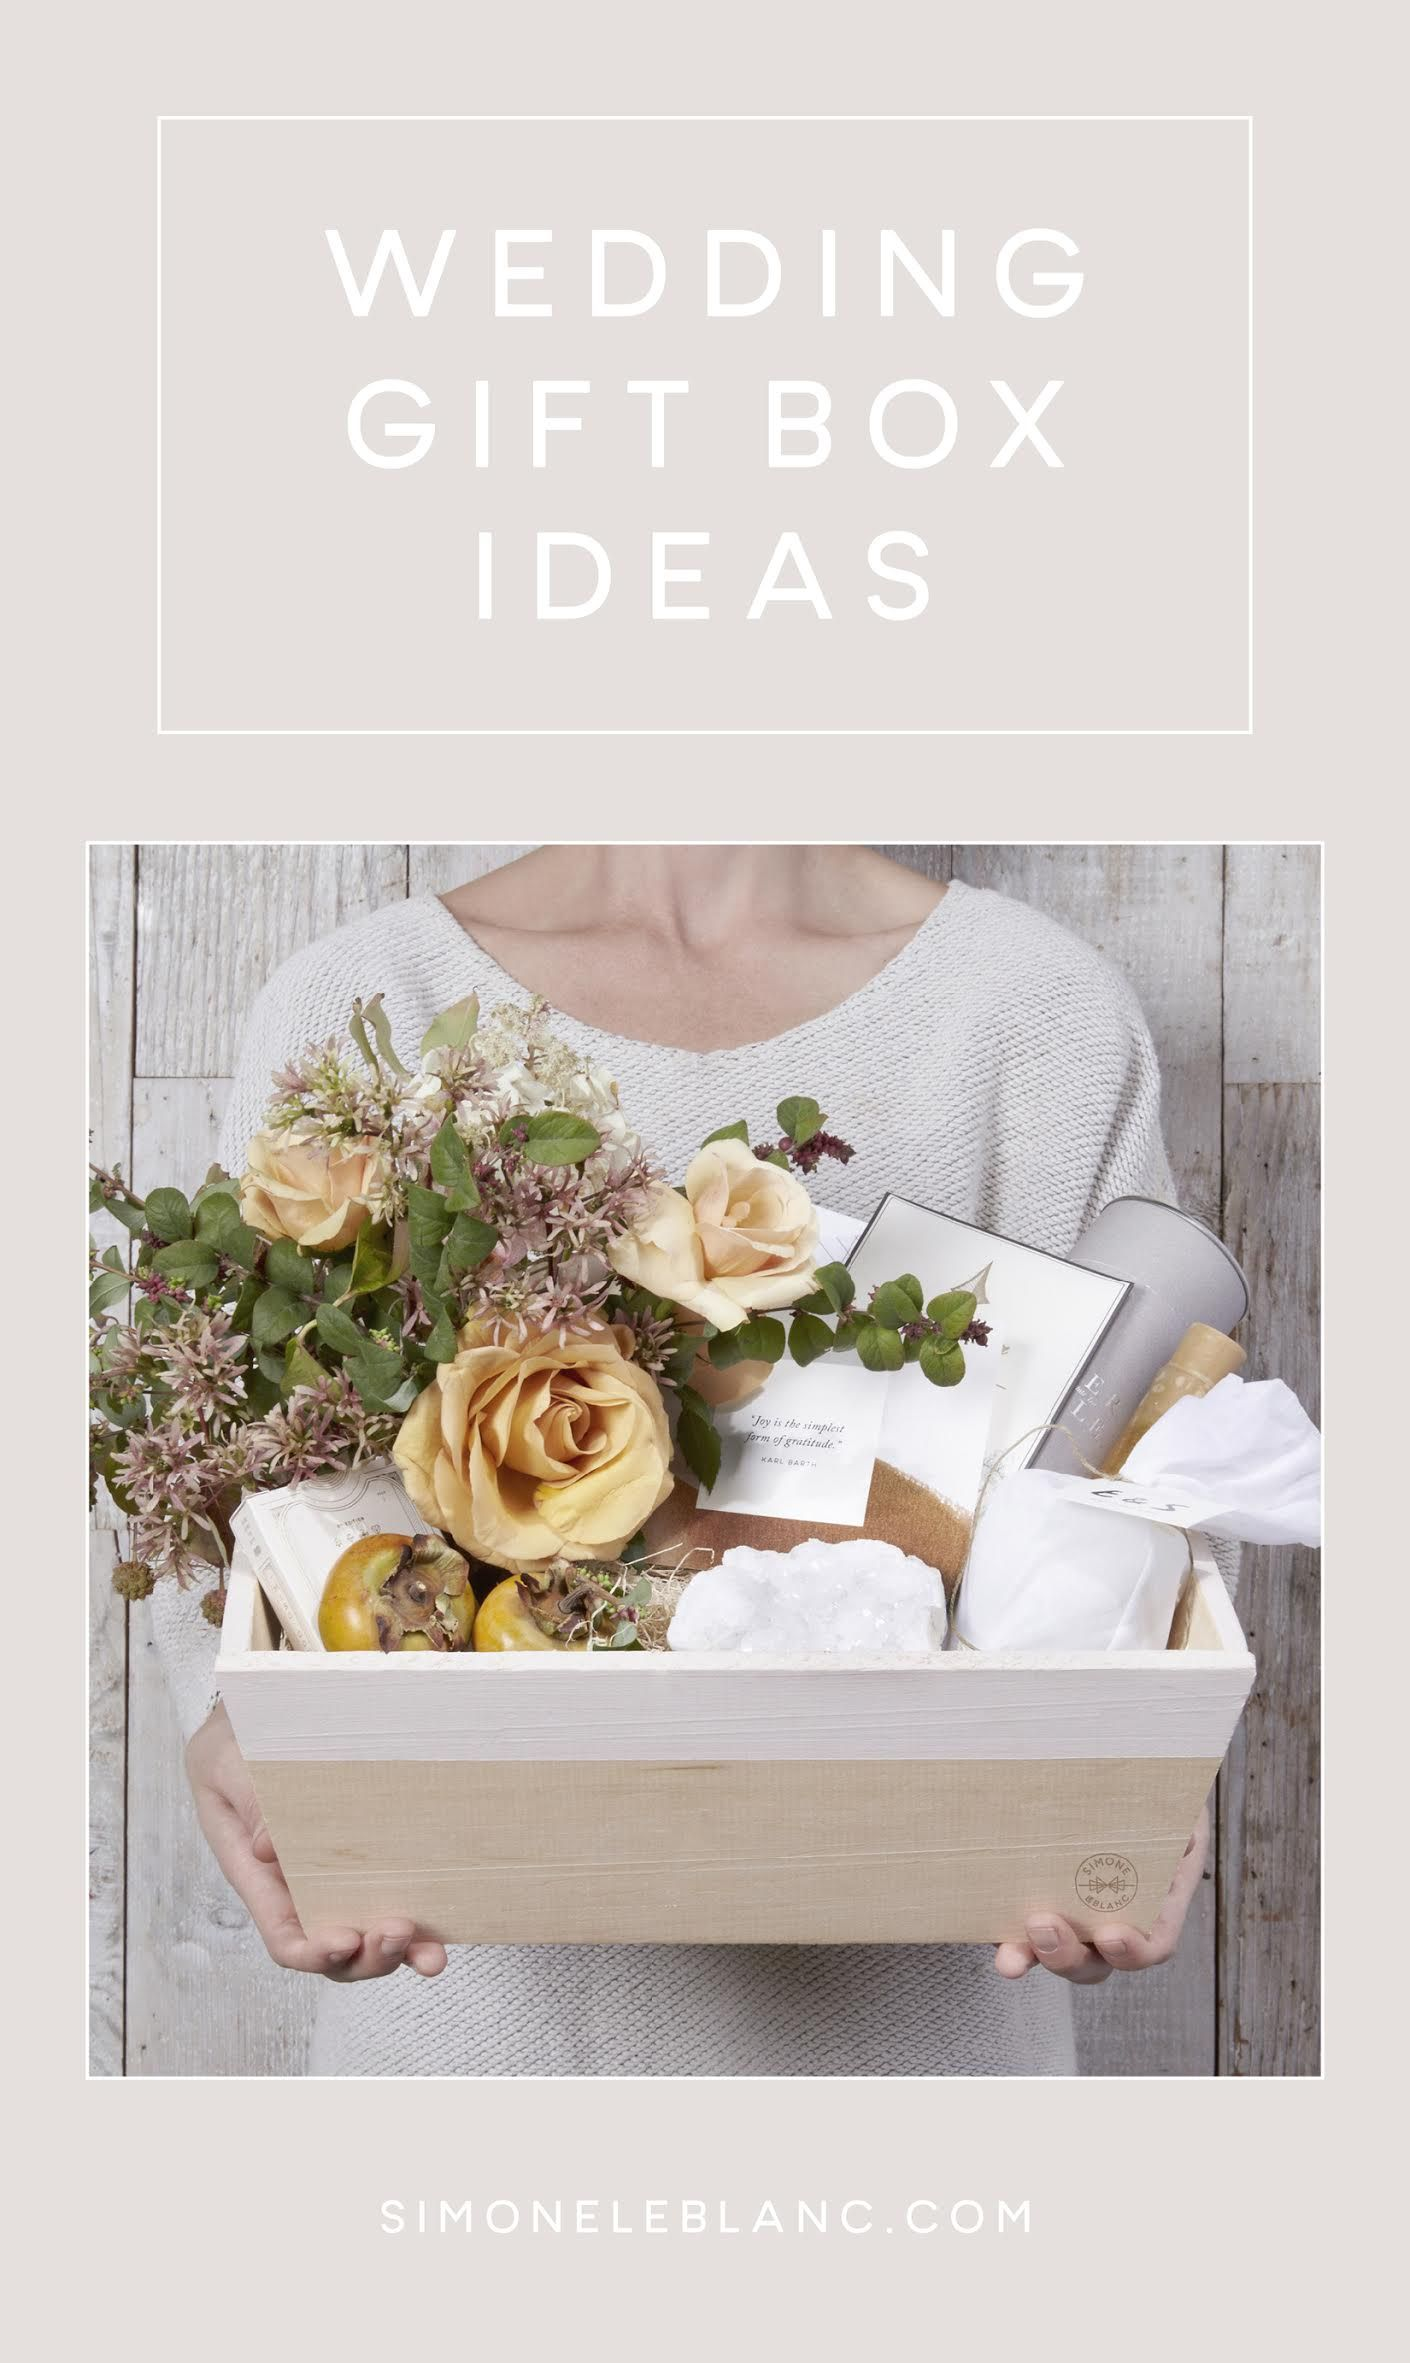 Wedding Gift Box Ideas And Inspiration From Simone Leblanc Gifts